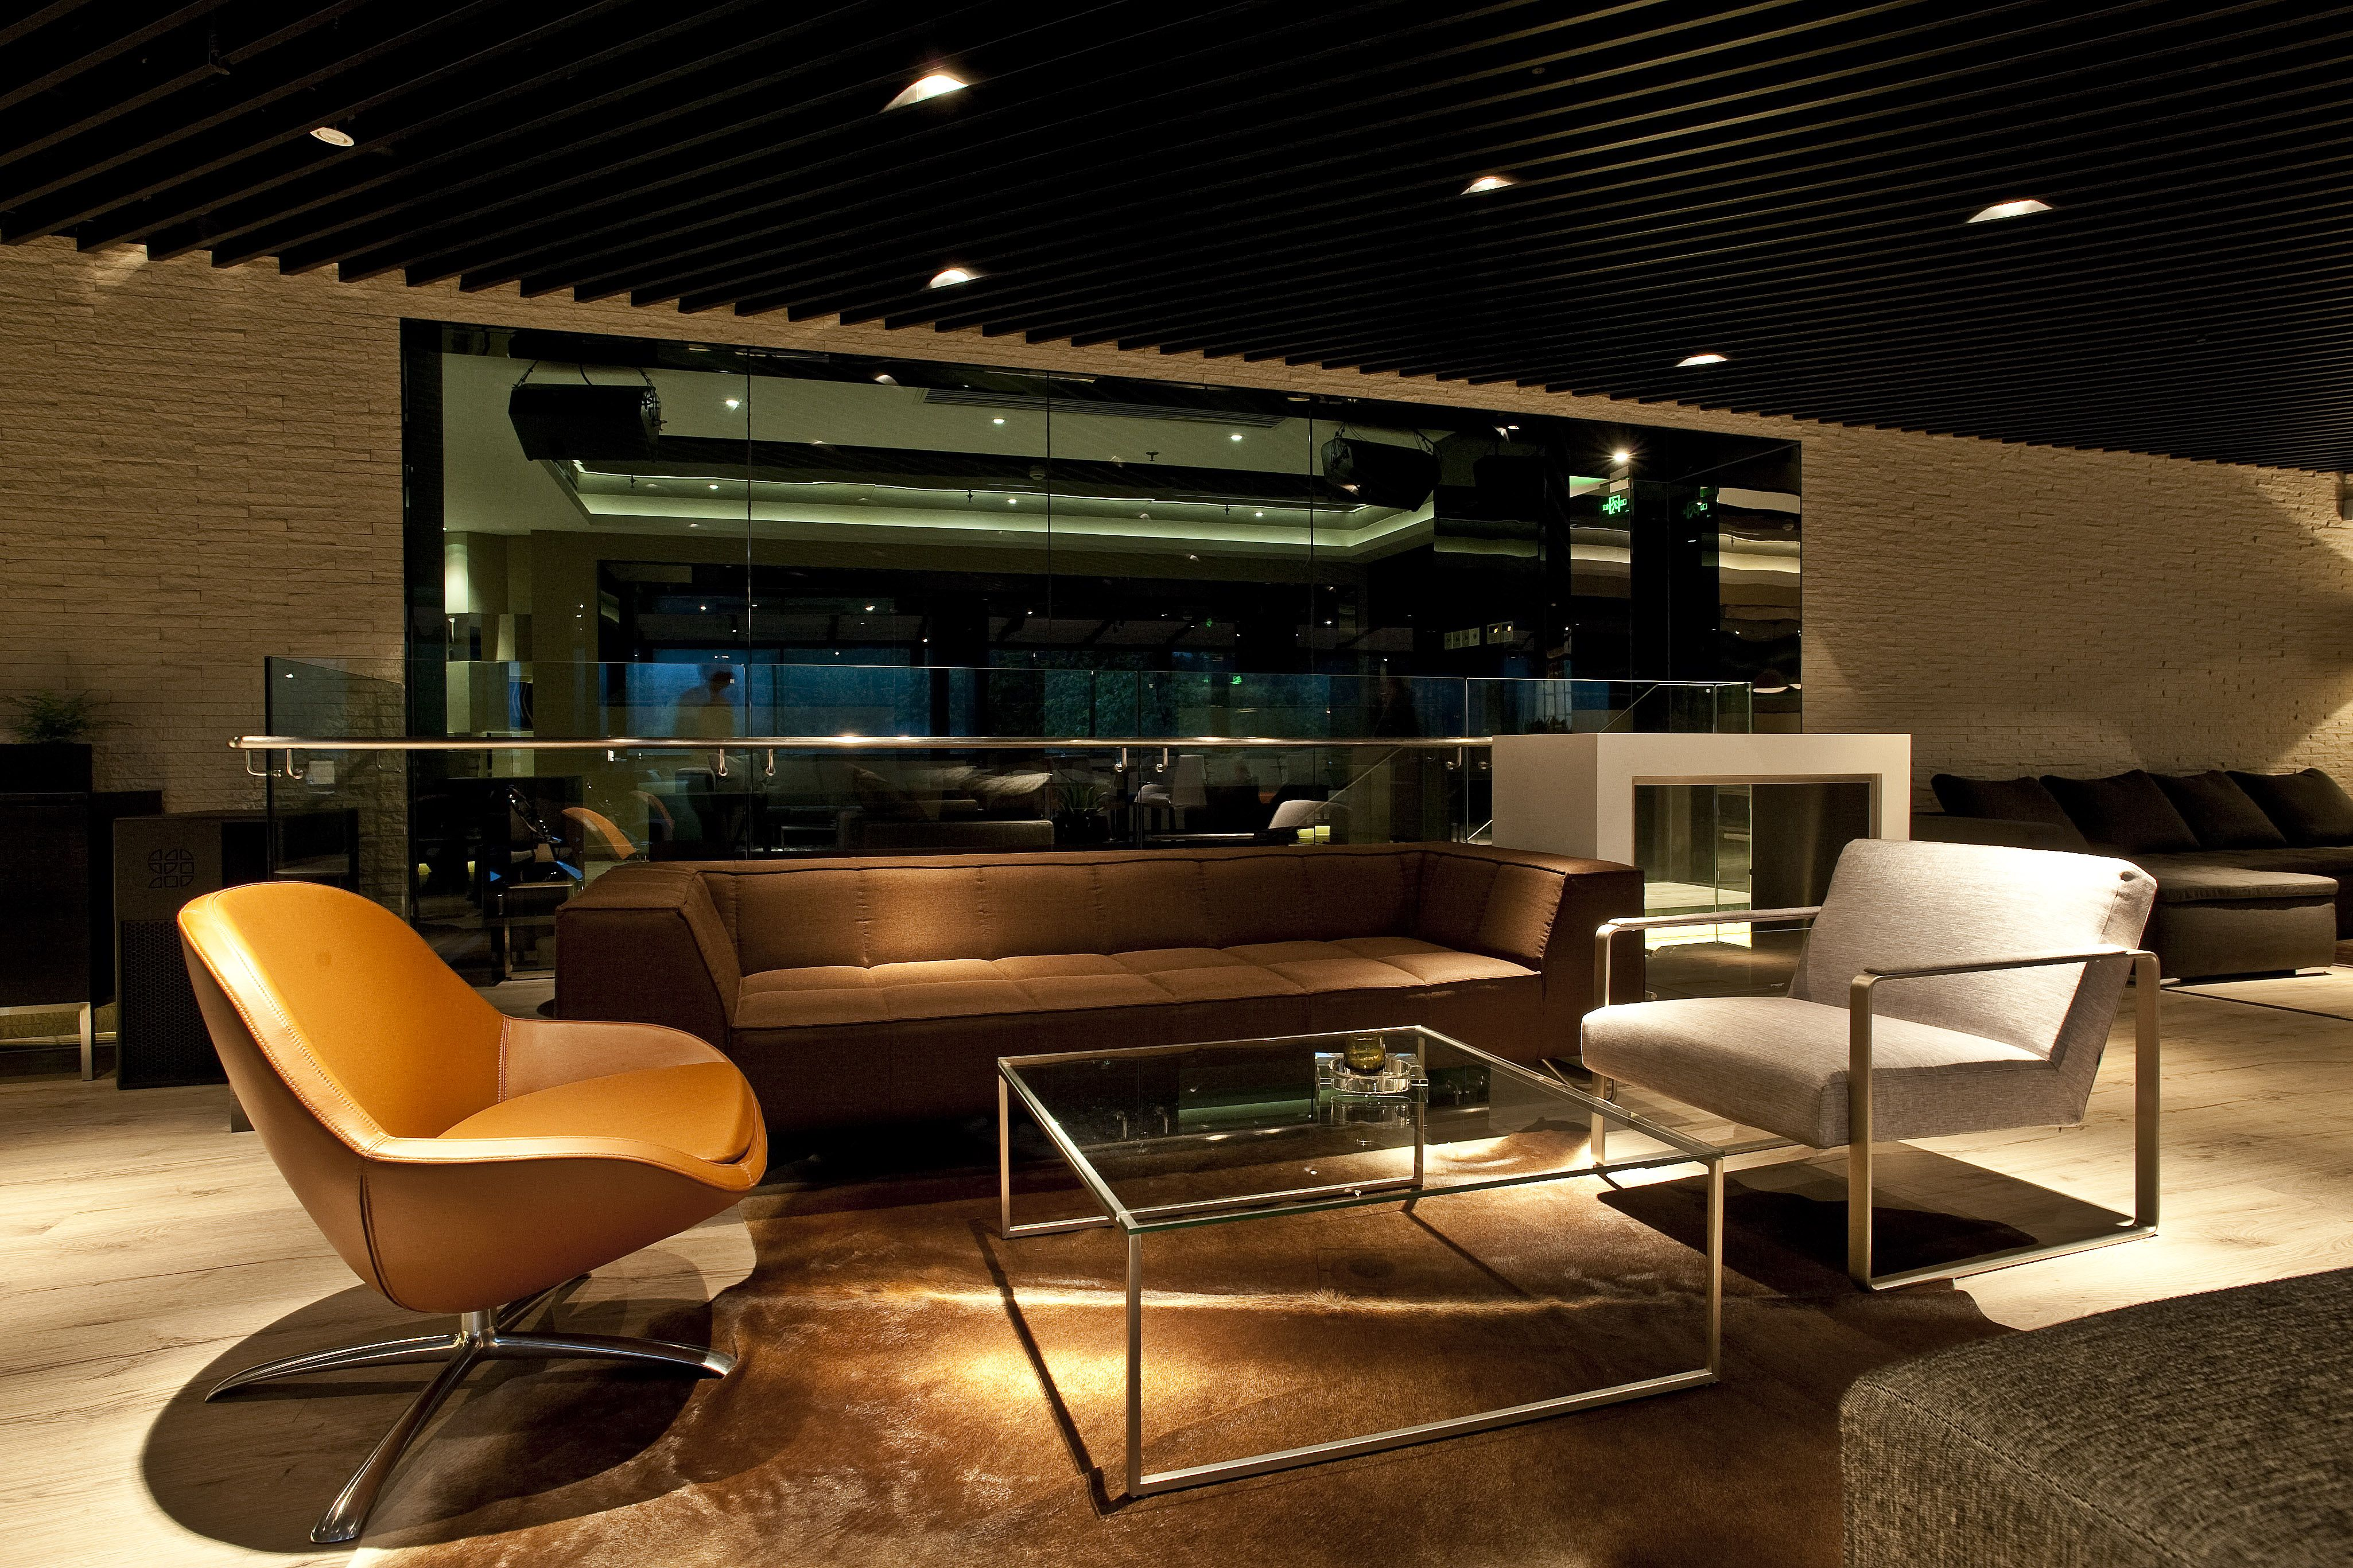 Milos Bedroom Furniture Boconcept Milos Sofa Ross And Veneto Chairs In Muse Vip Lounge